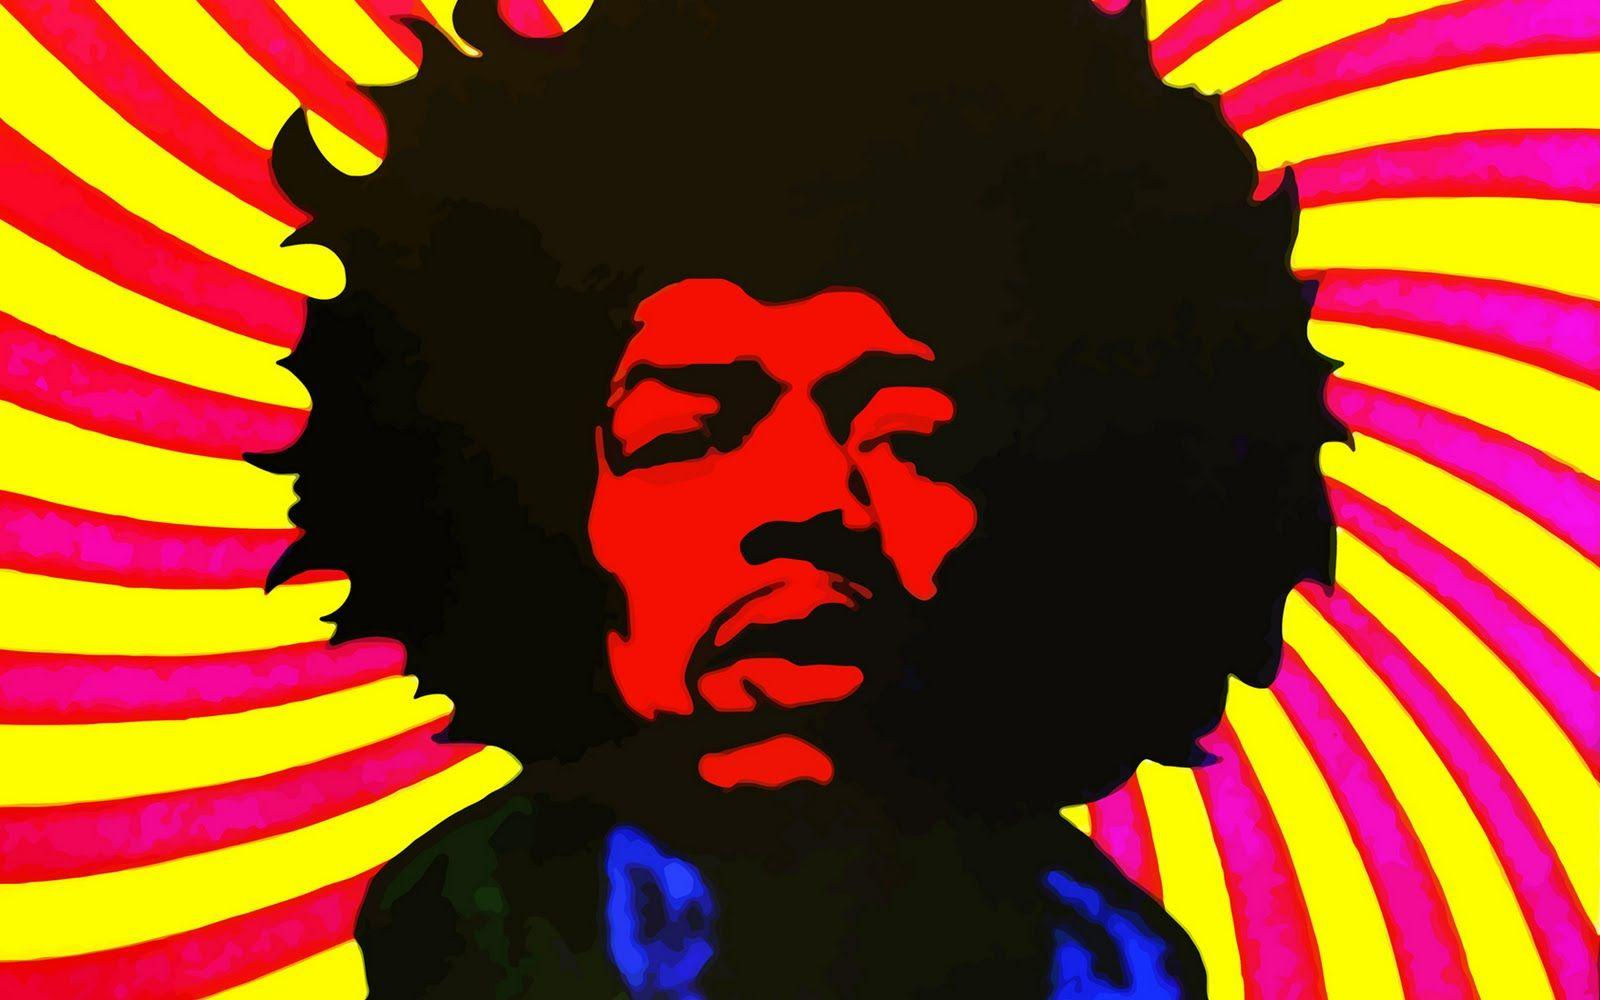 Jimi hendrix backgrounds wallpaper cave kelsey cooley jimi hendrix background altavistaventures Images